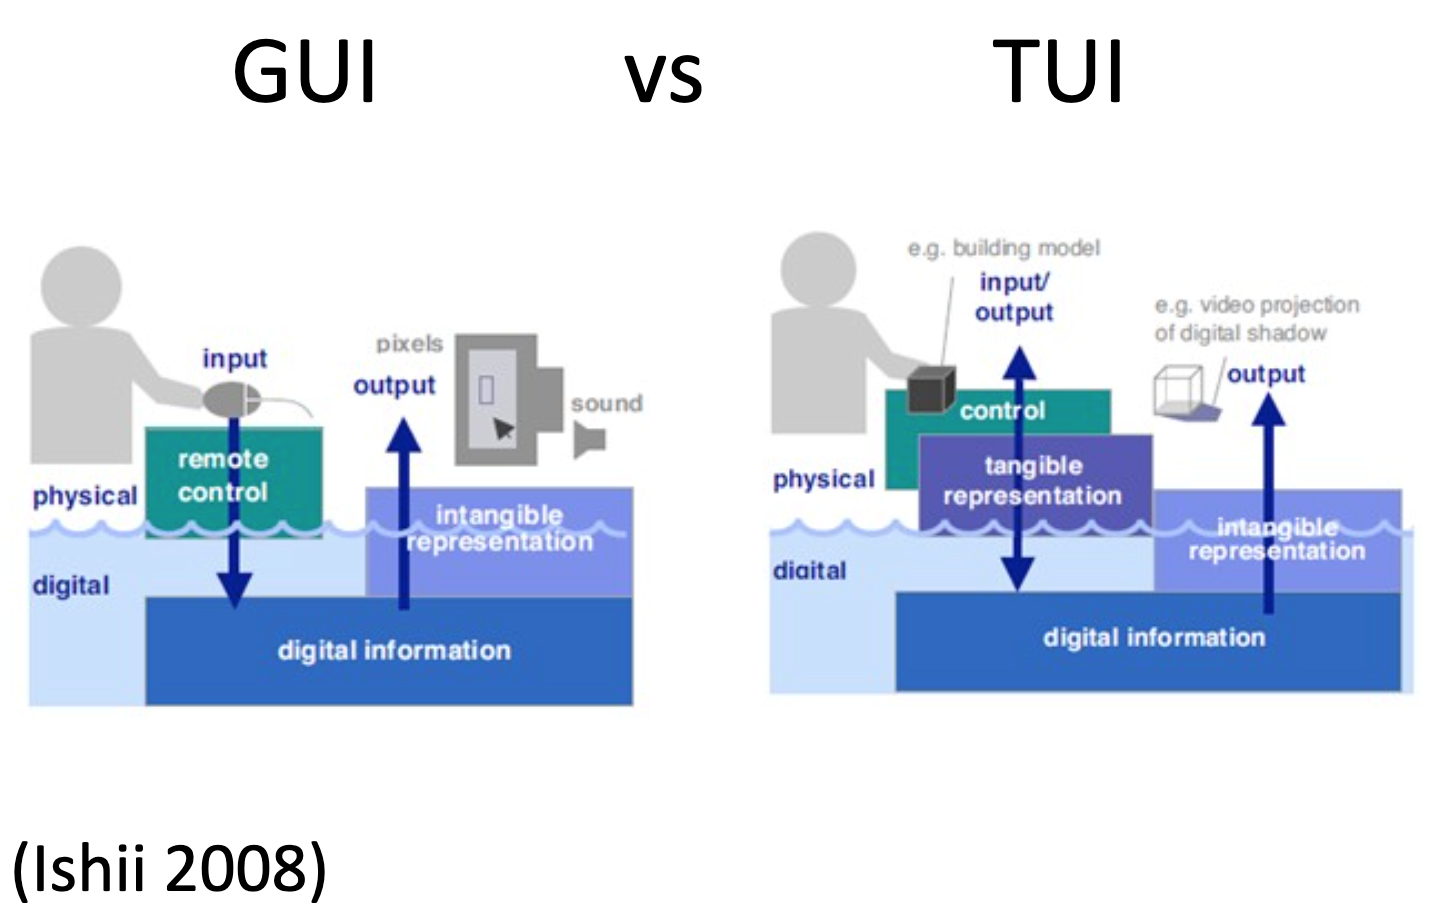 Graphical User Interface vs Tangible User Interface